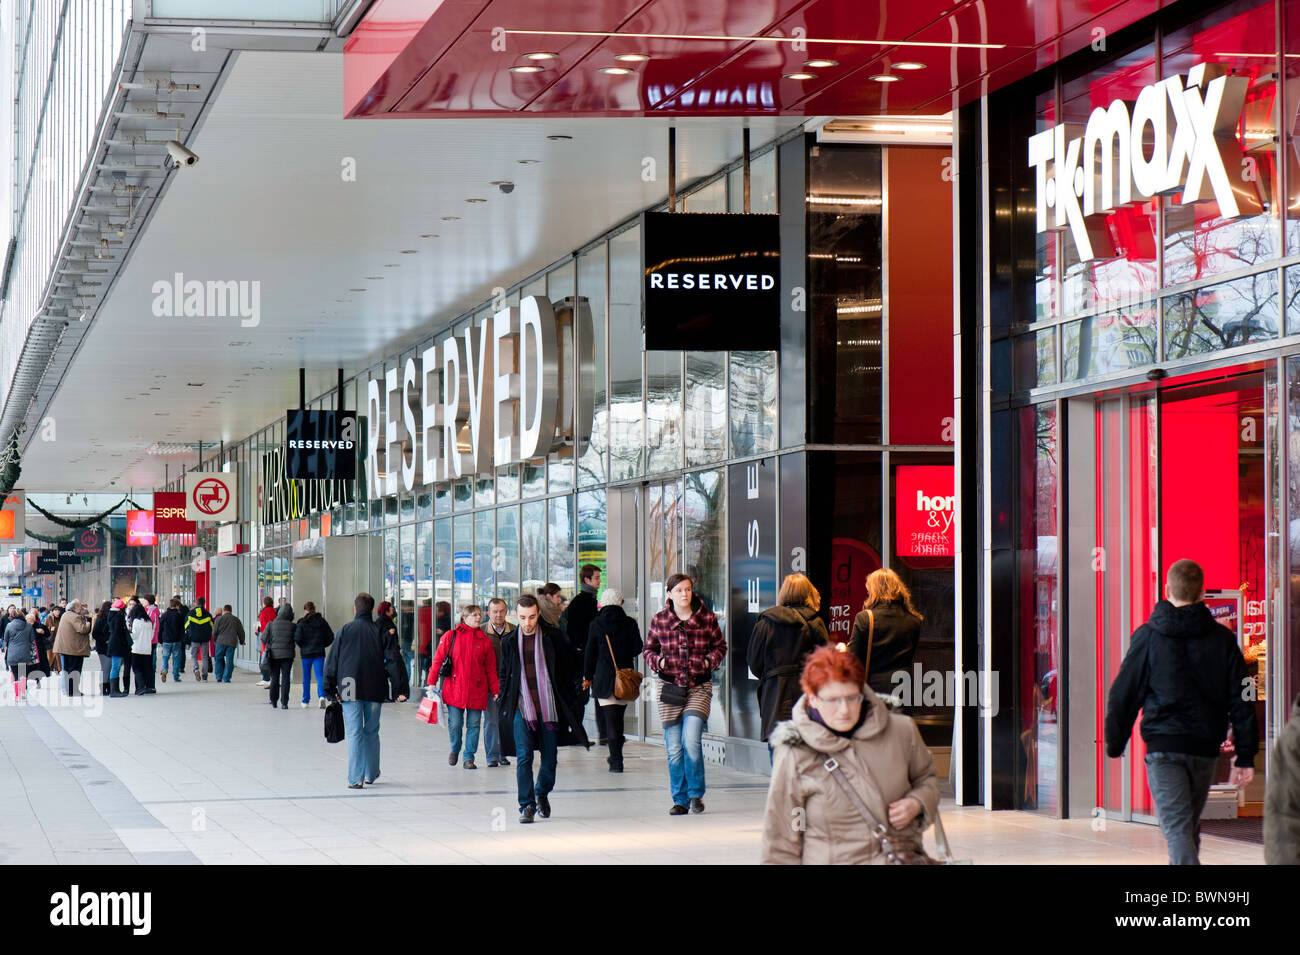 Street busy with shoppers, Warsaw, Poland - Stock Image